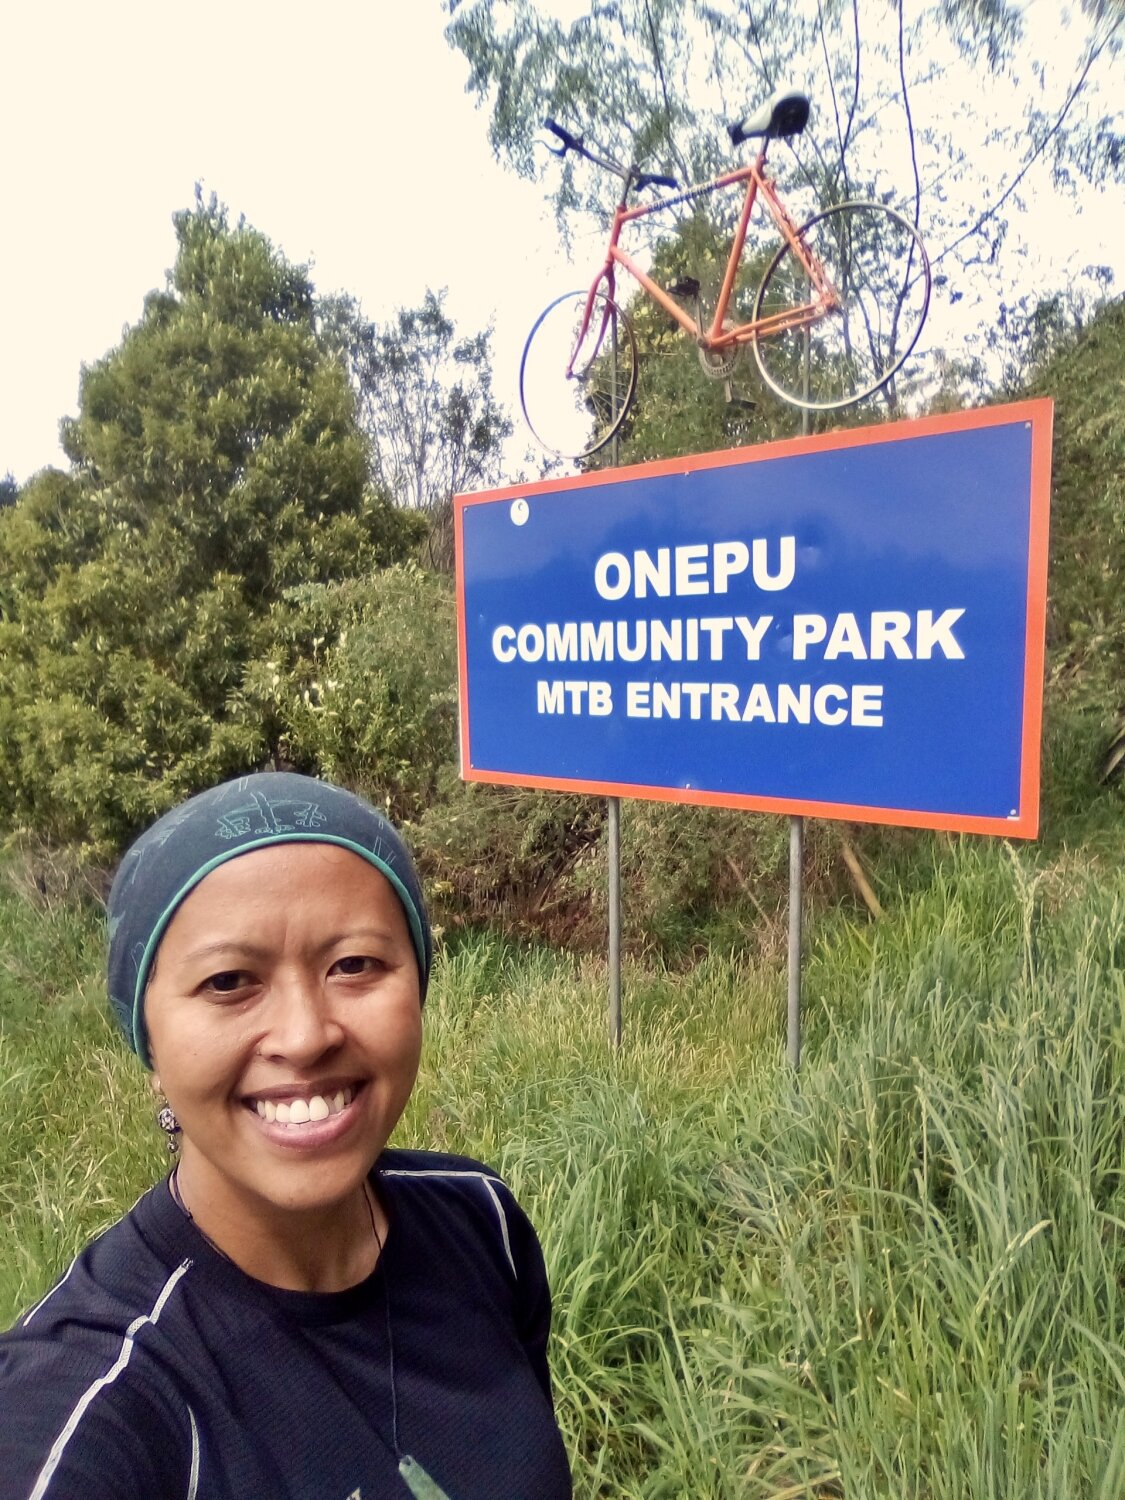 After our ride at the Onepu Community Park I was all smiles.